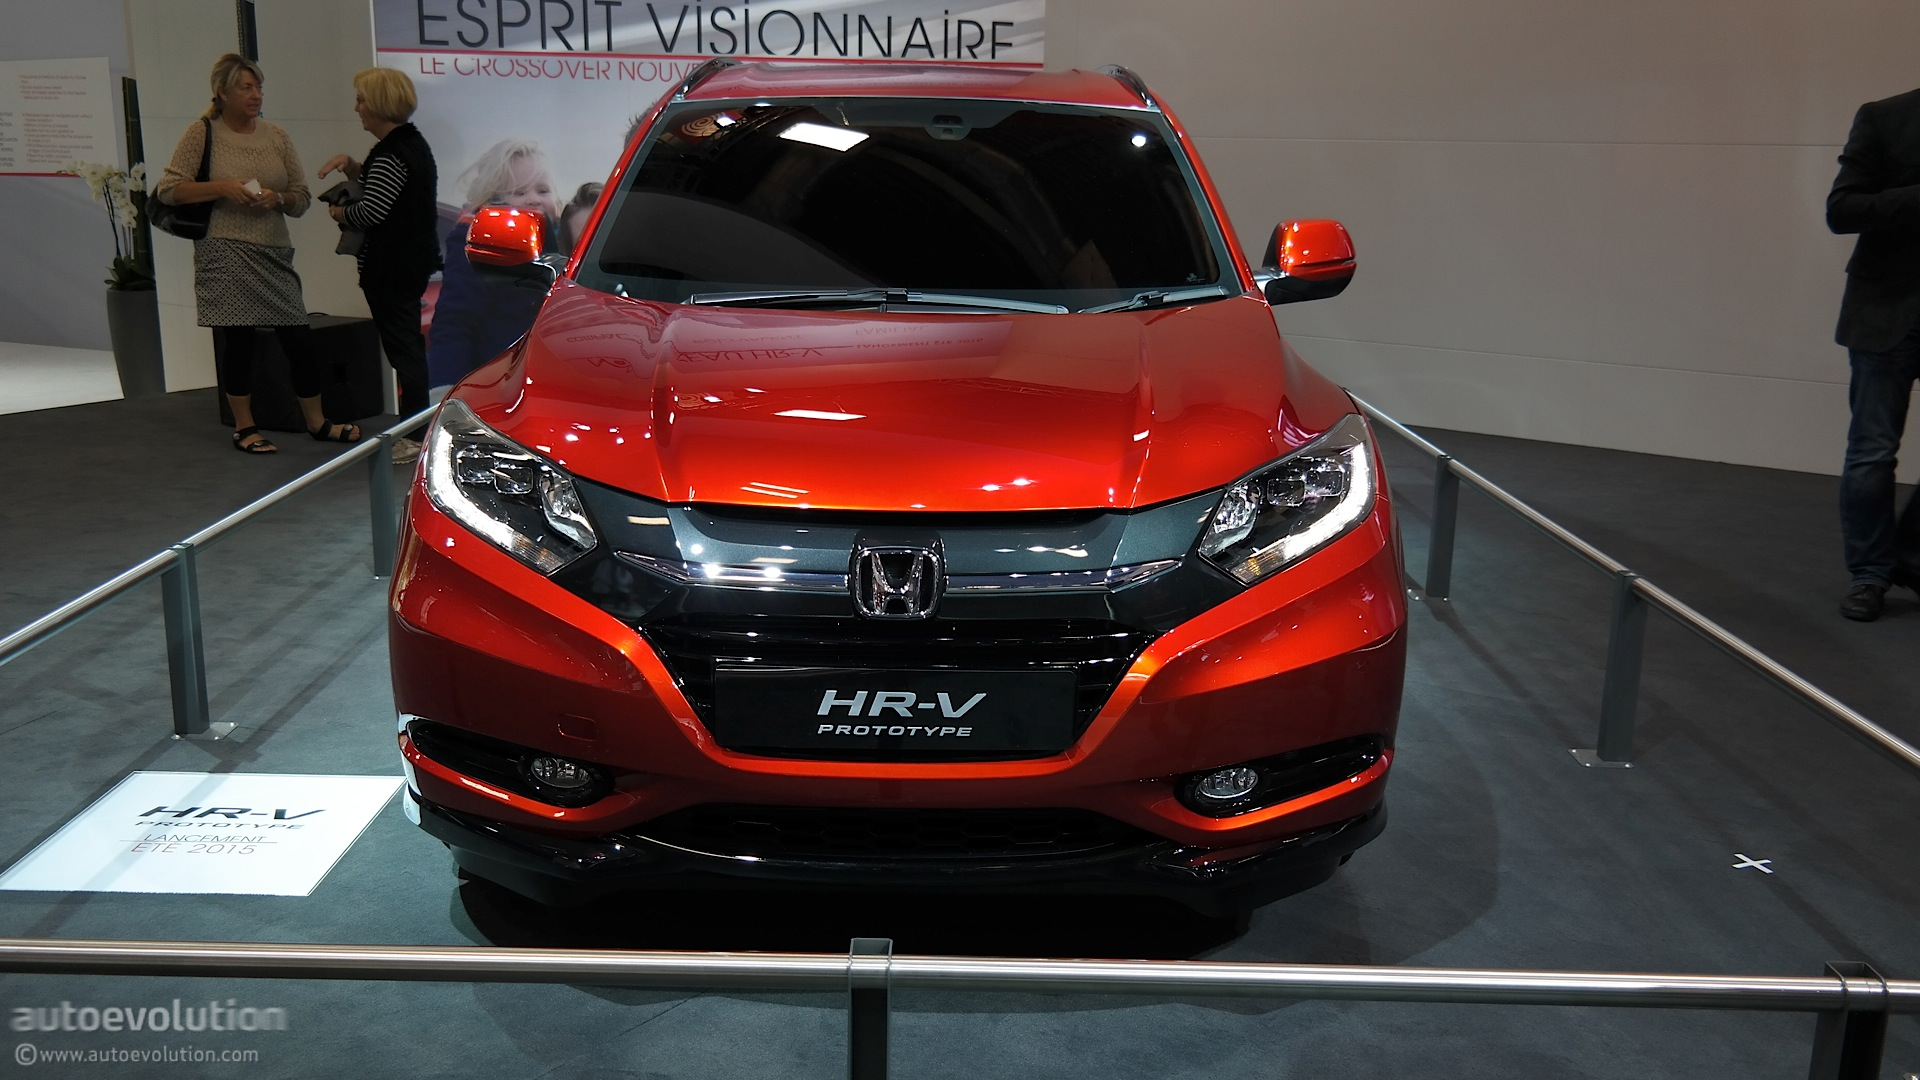 2015 Honda HR-V Is Compact and Stylish at Paris 2014 Debut [Live.